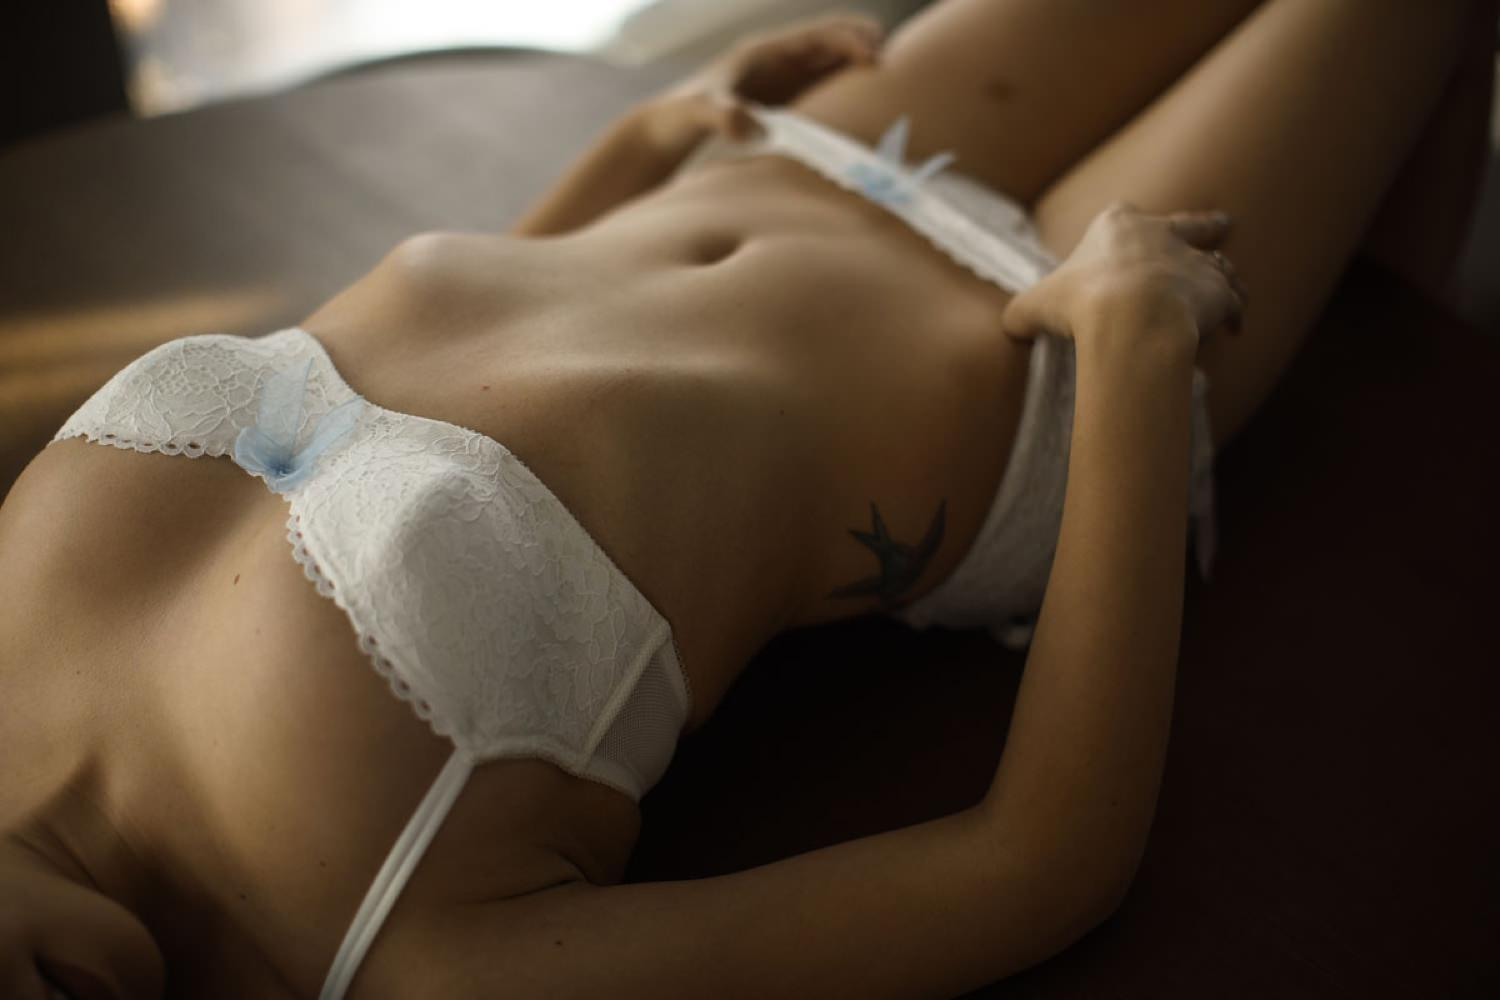 lady shows off her tattoos during boudoir session